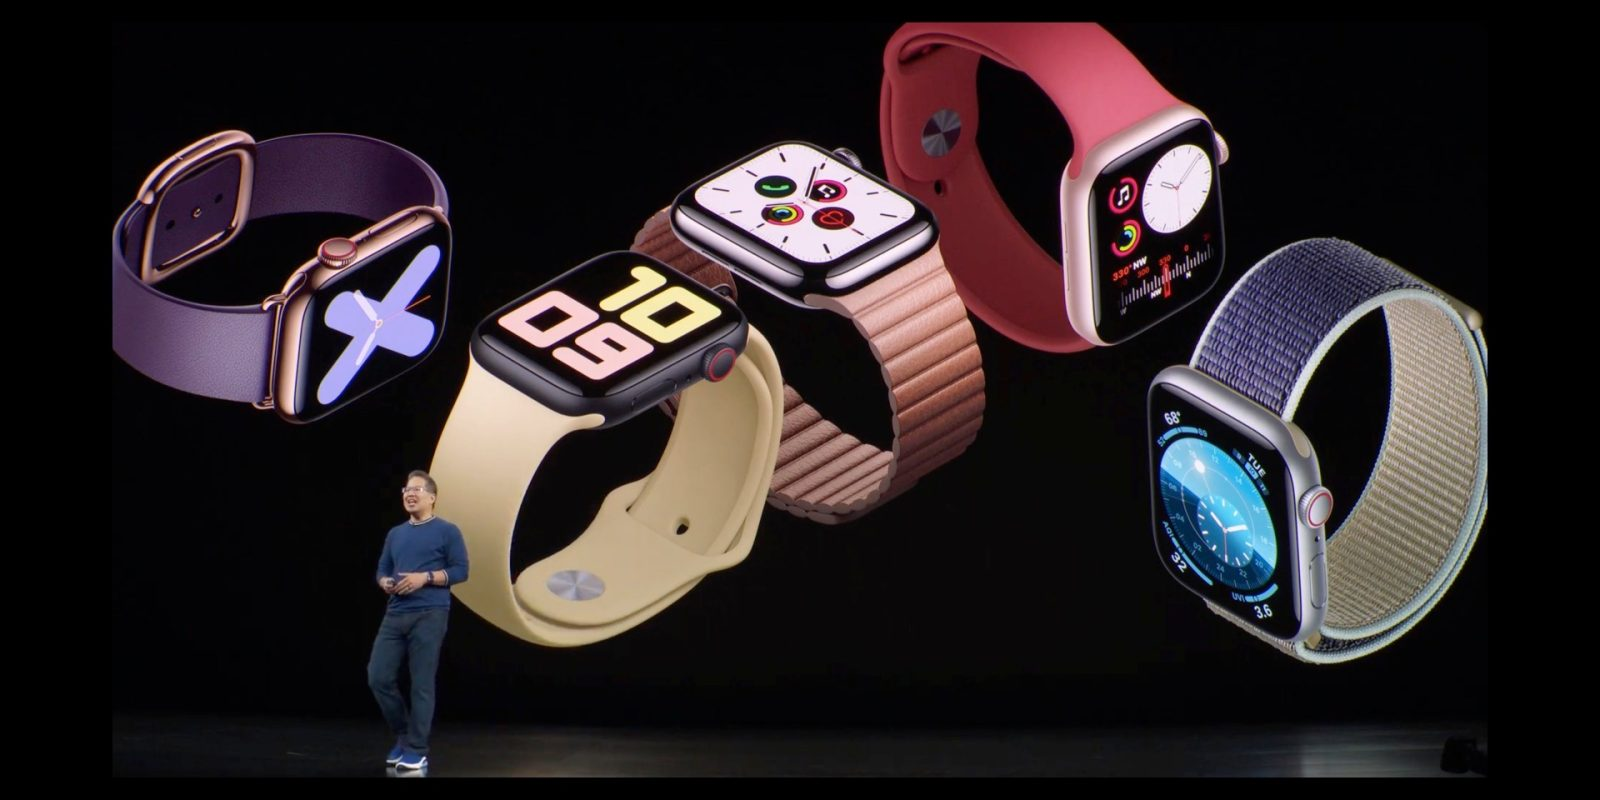 Apple unveils Apple Watch Series 5 with always-on display, compass, titanium, and ceramic